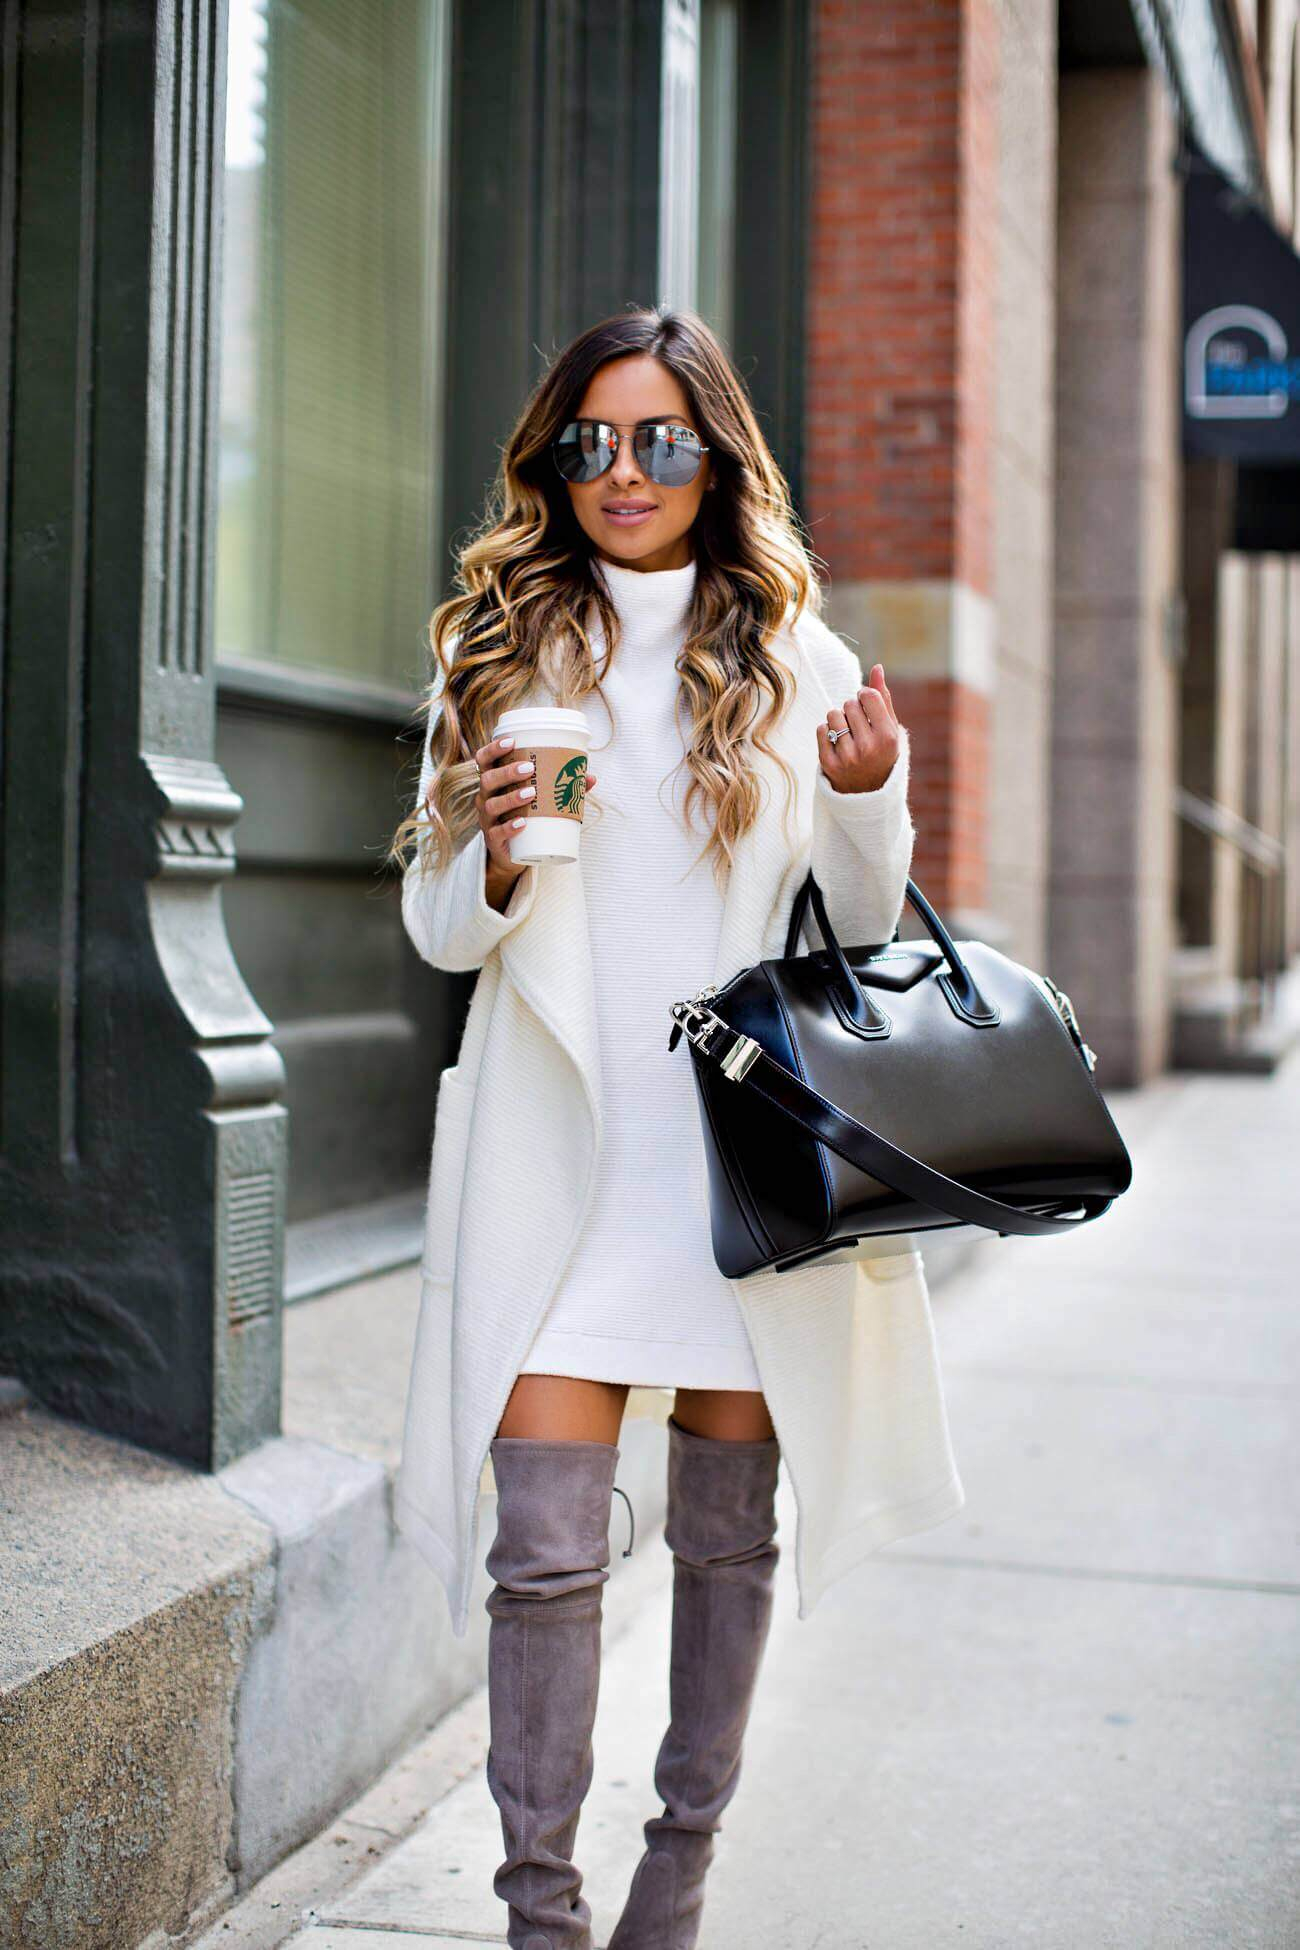 Awesome Sweater Style Outfit Ideas inspiredluv (24)